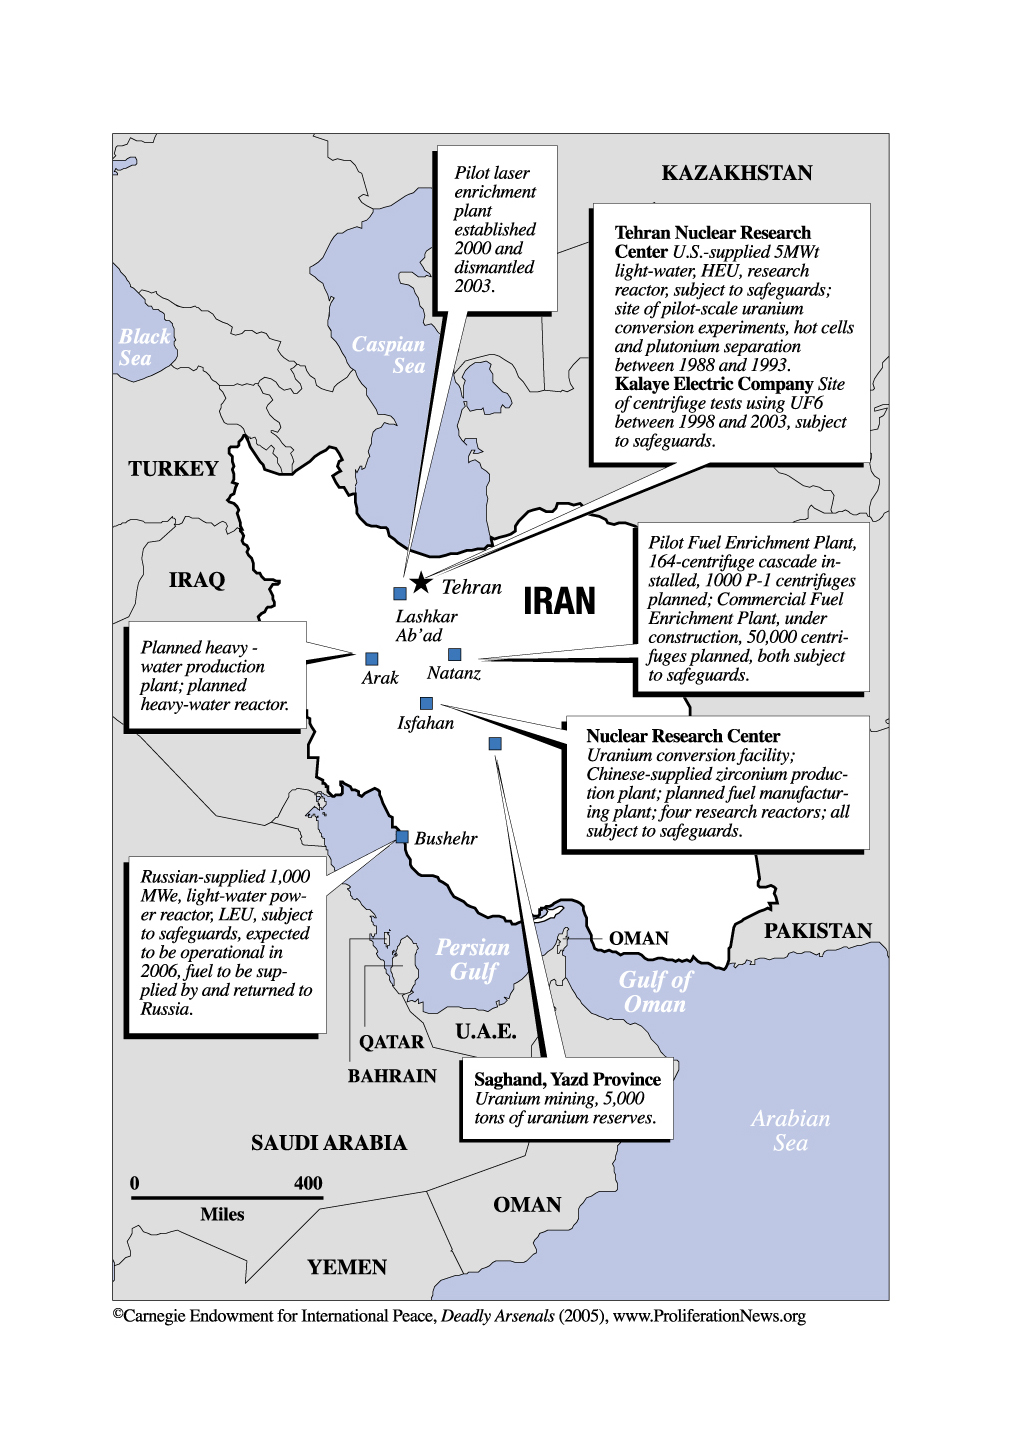 2009 cricketdianes weblog page 3 iran deadly arsenals 2005 map from carnegie endowment for international peace ccuart Image collections